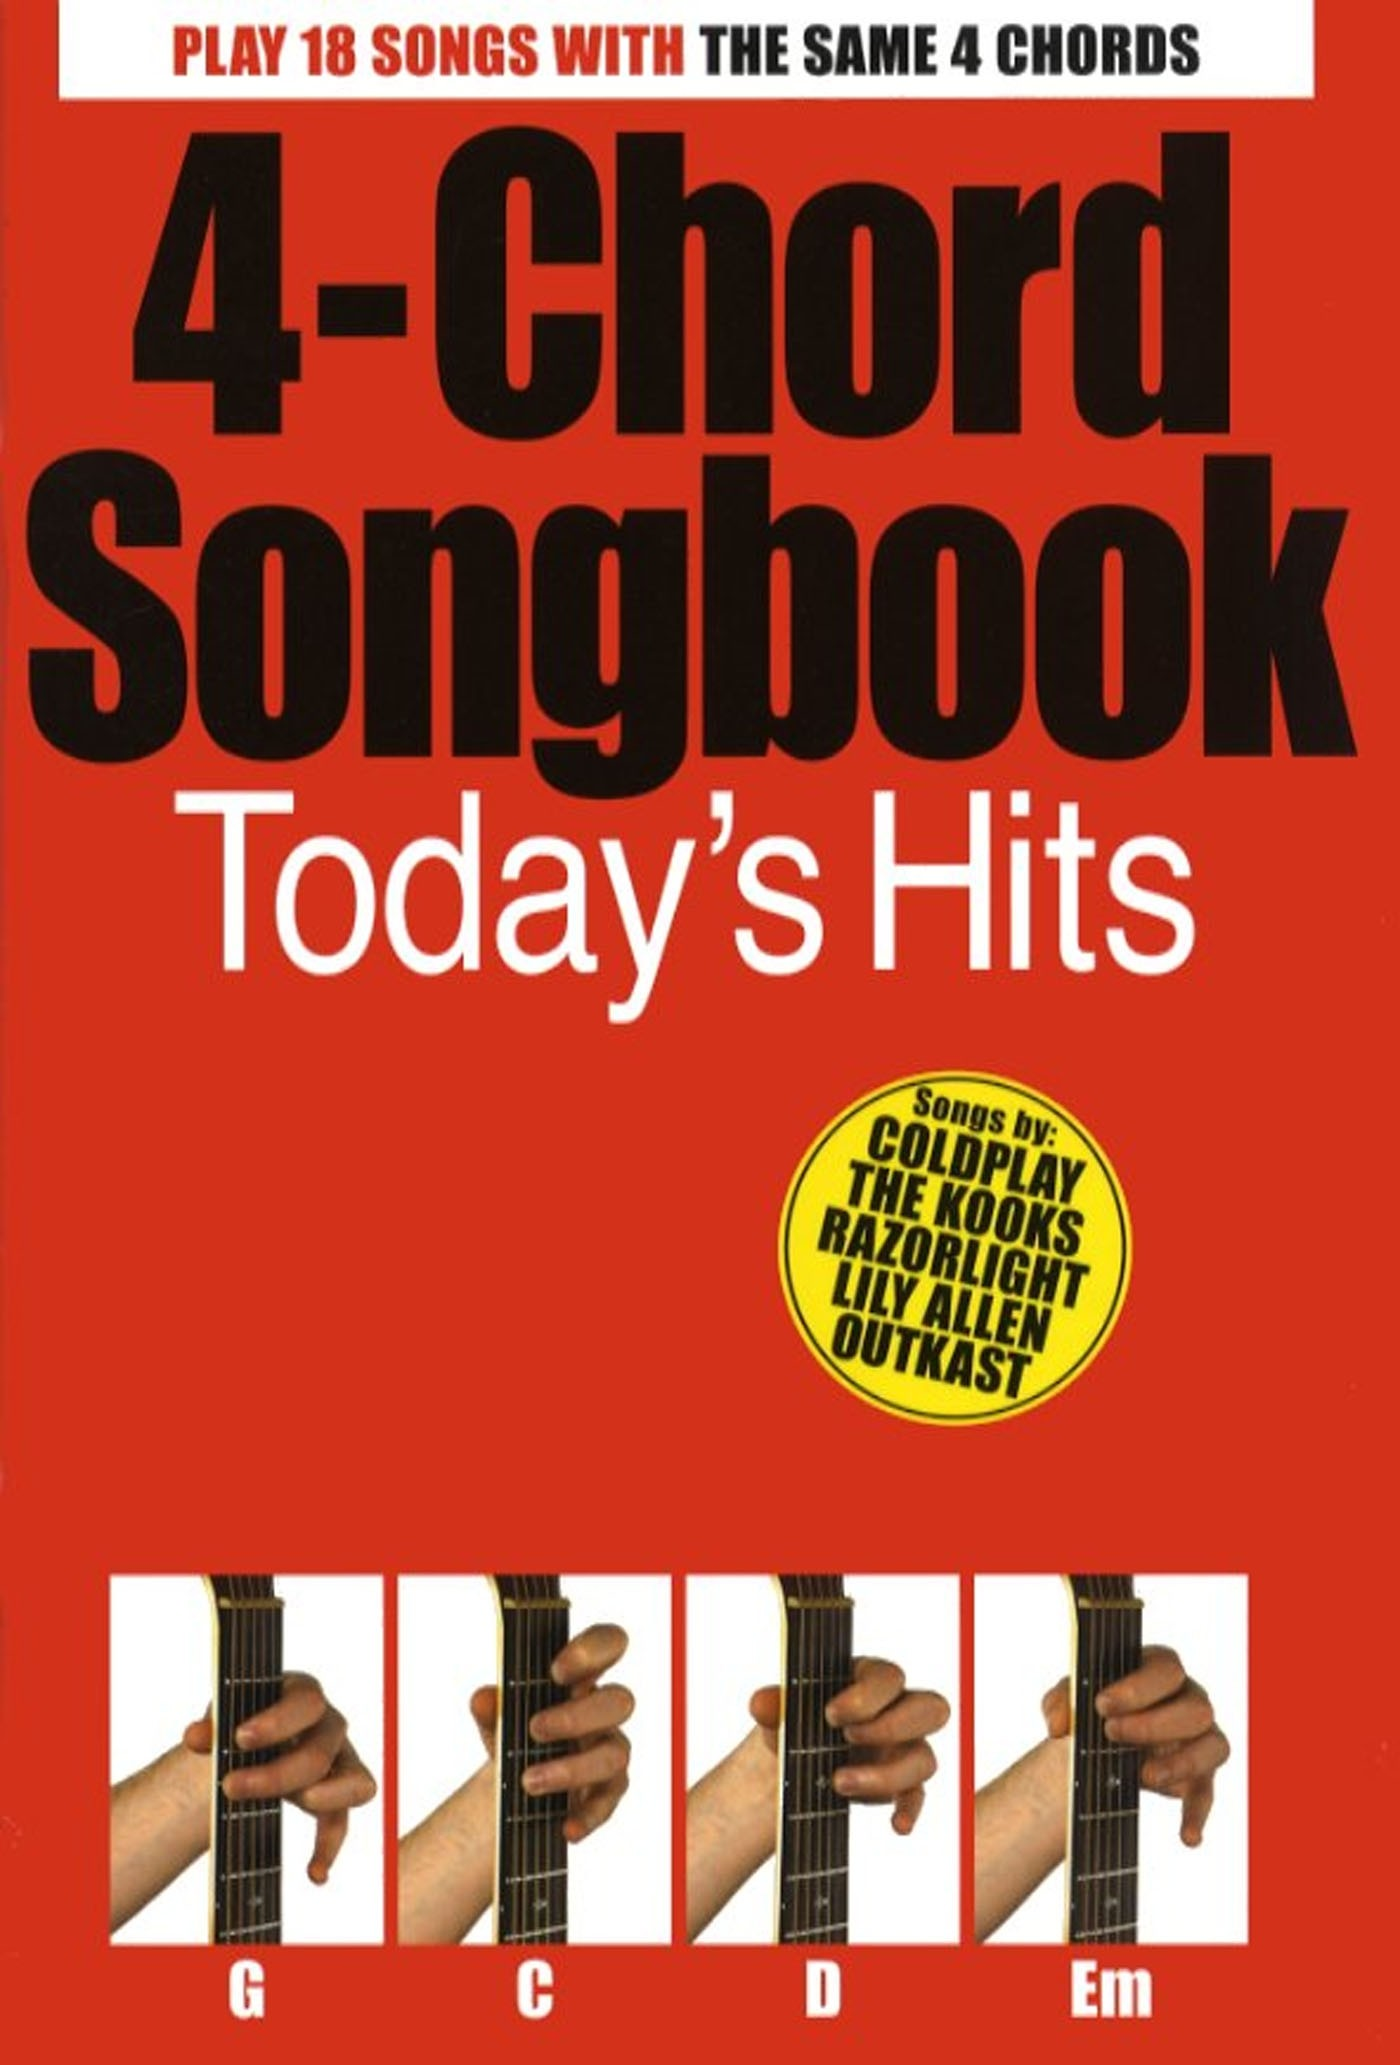 4 Chord Songbook Todays Hits Book Lyrics Guitar Chords G C D Em 18